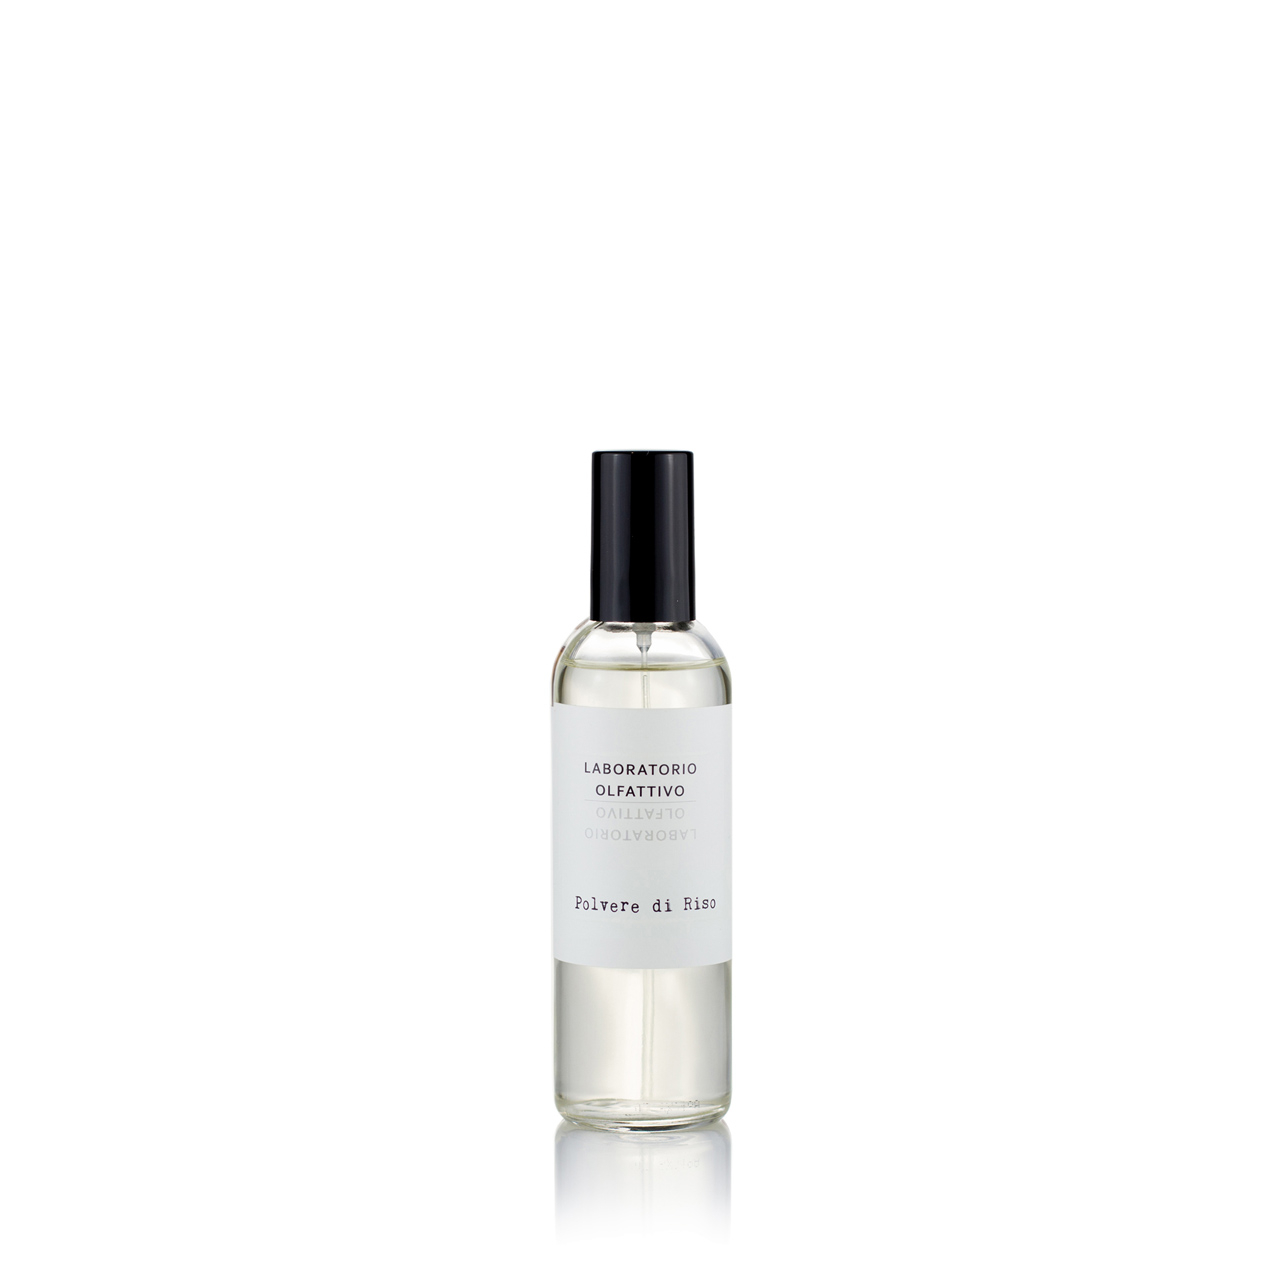 Polvere di riso - Room Fragrance